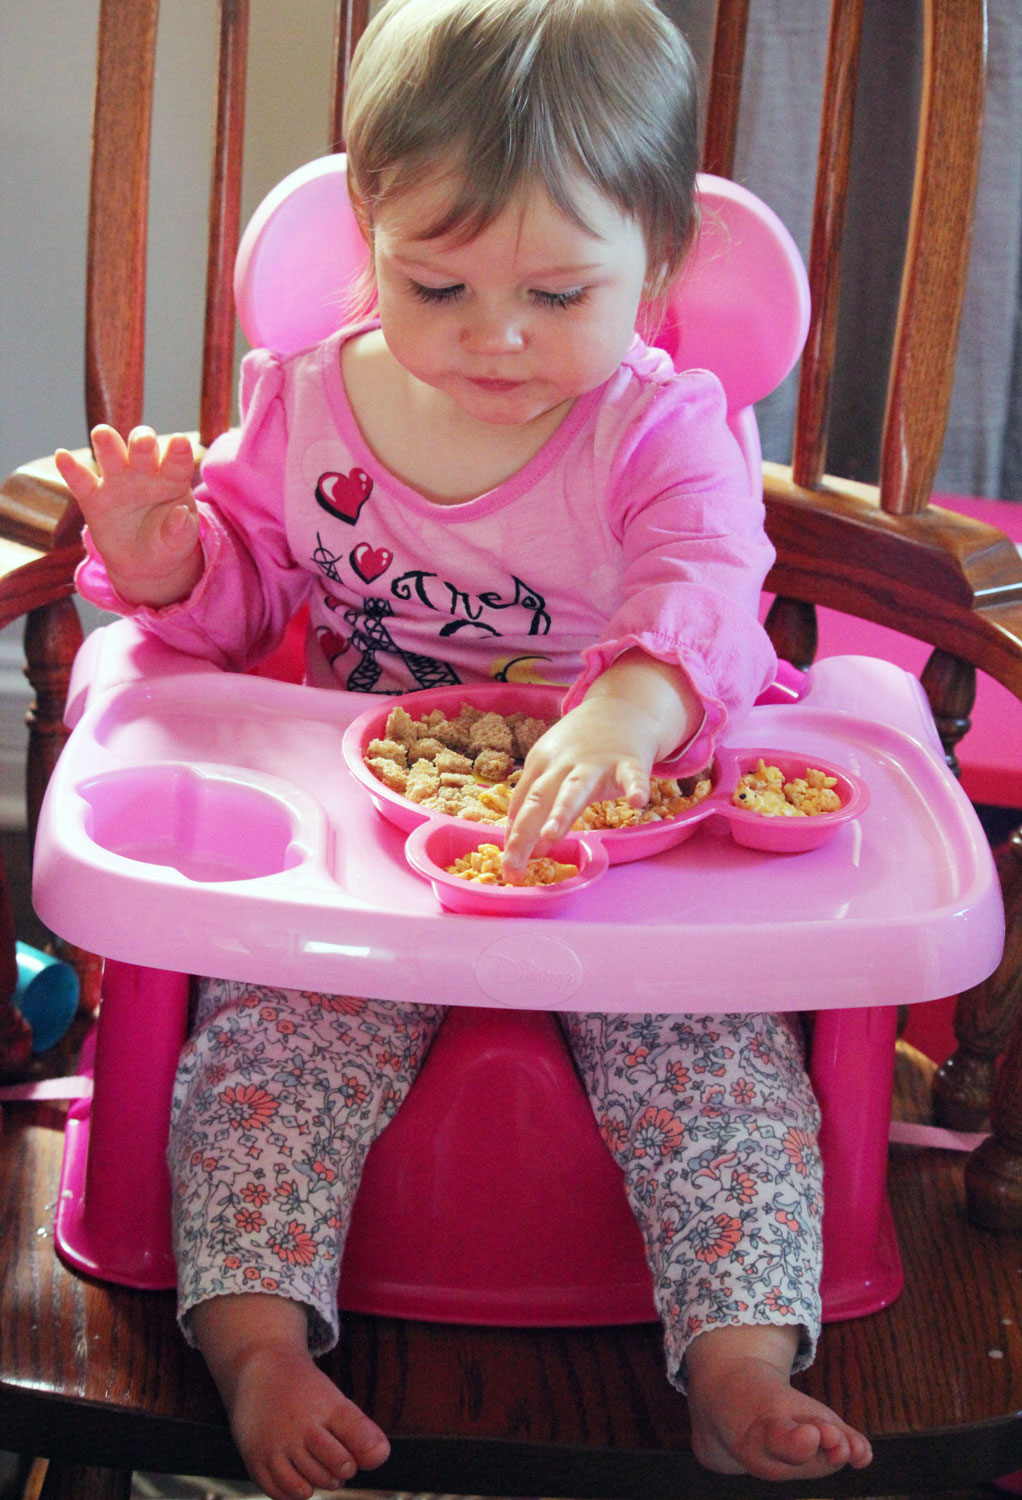 The First Years Minnie Mouse Feeding Seat Review | Bottles & Banter